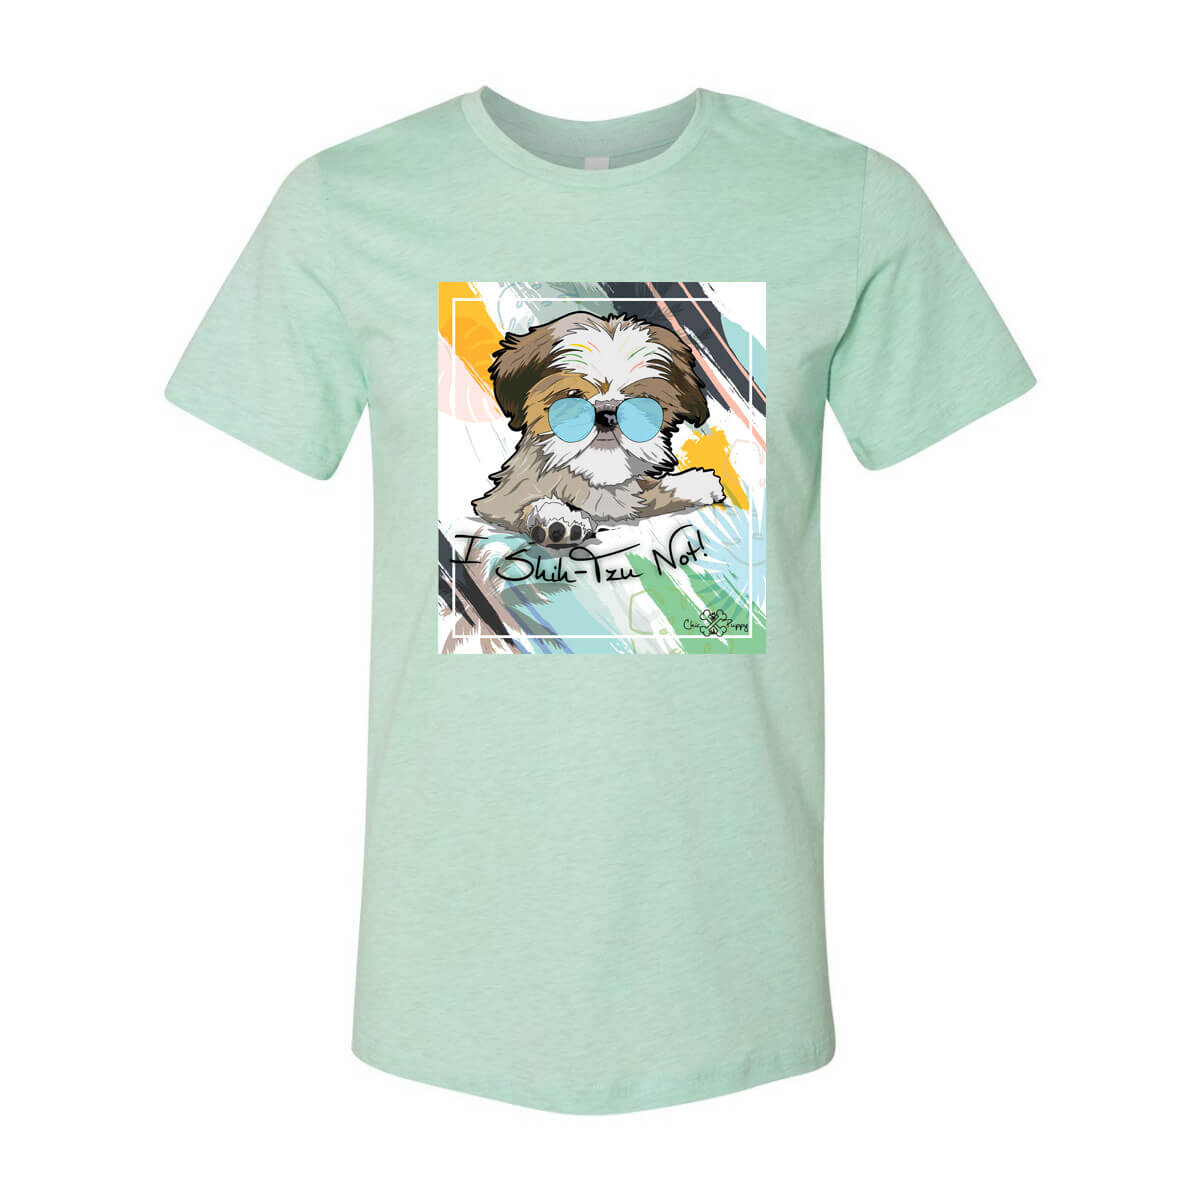 Matching Dog and Owner - I Shih-Tzu Not! - Youth Shirts - Youth